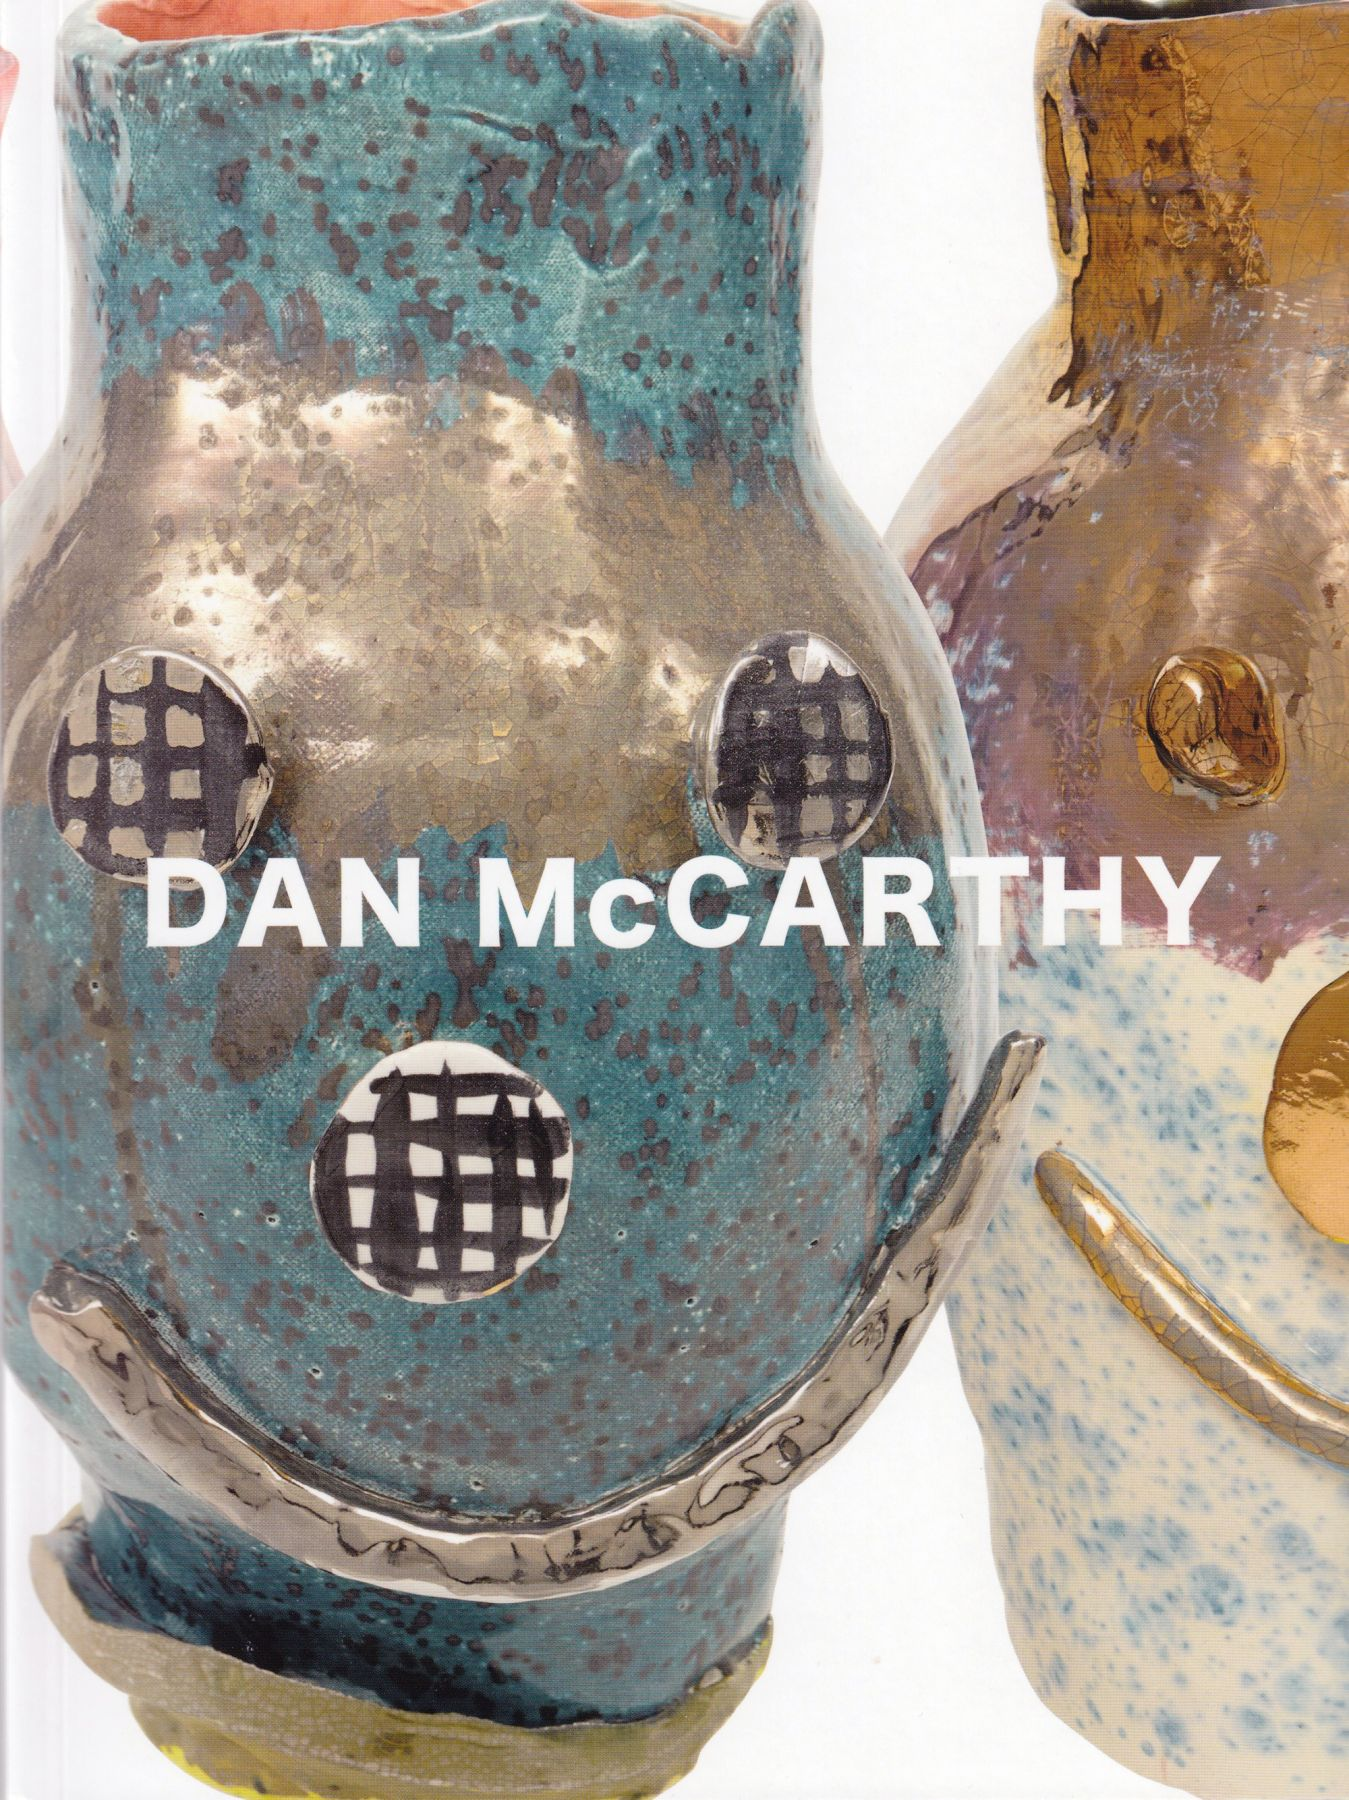 Cover image of Dan McCarthy: Facepots, published by Hassla Books, New York, 2015